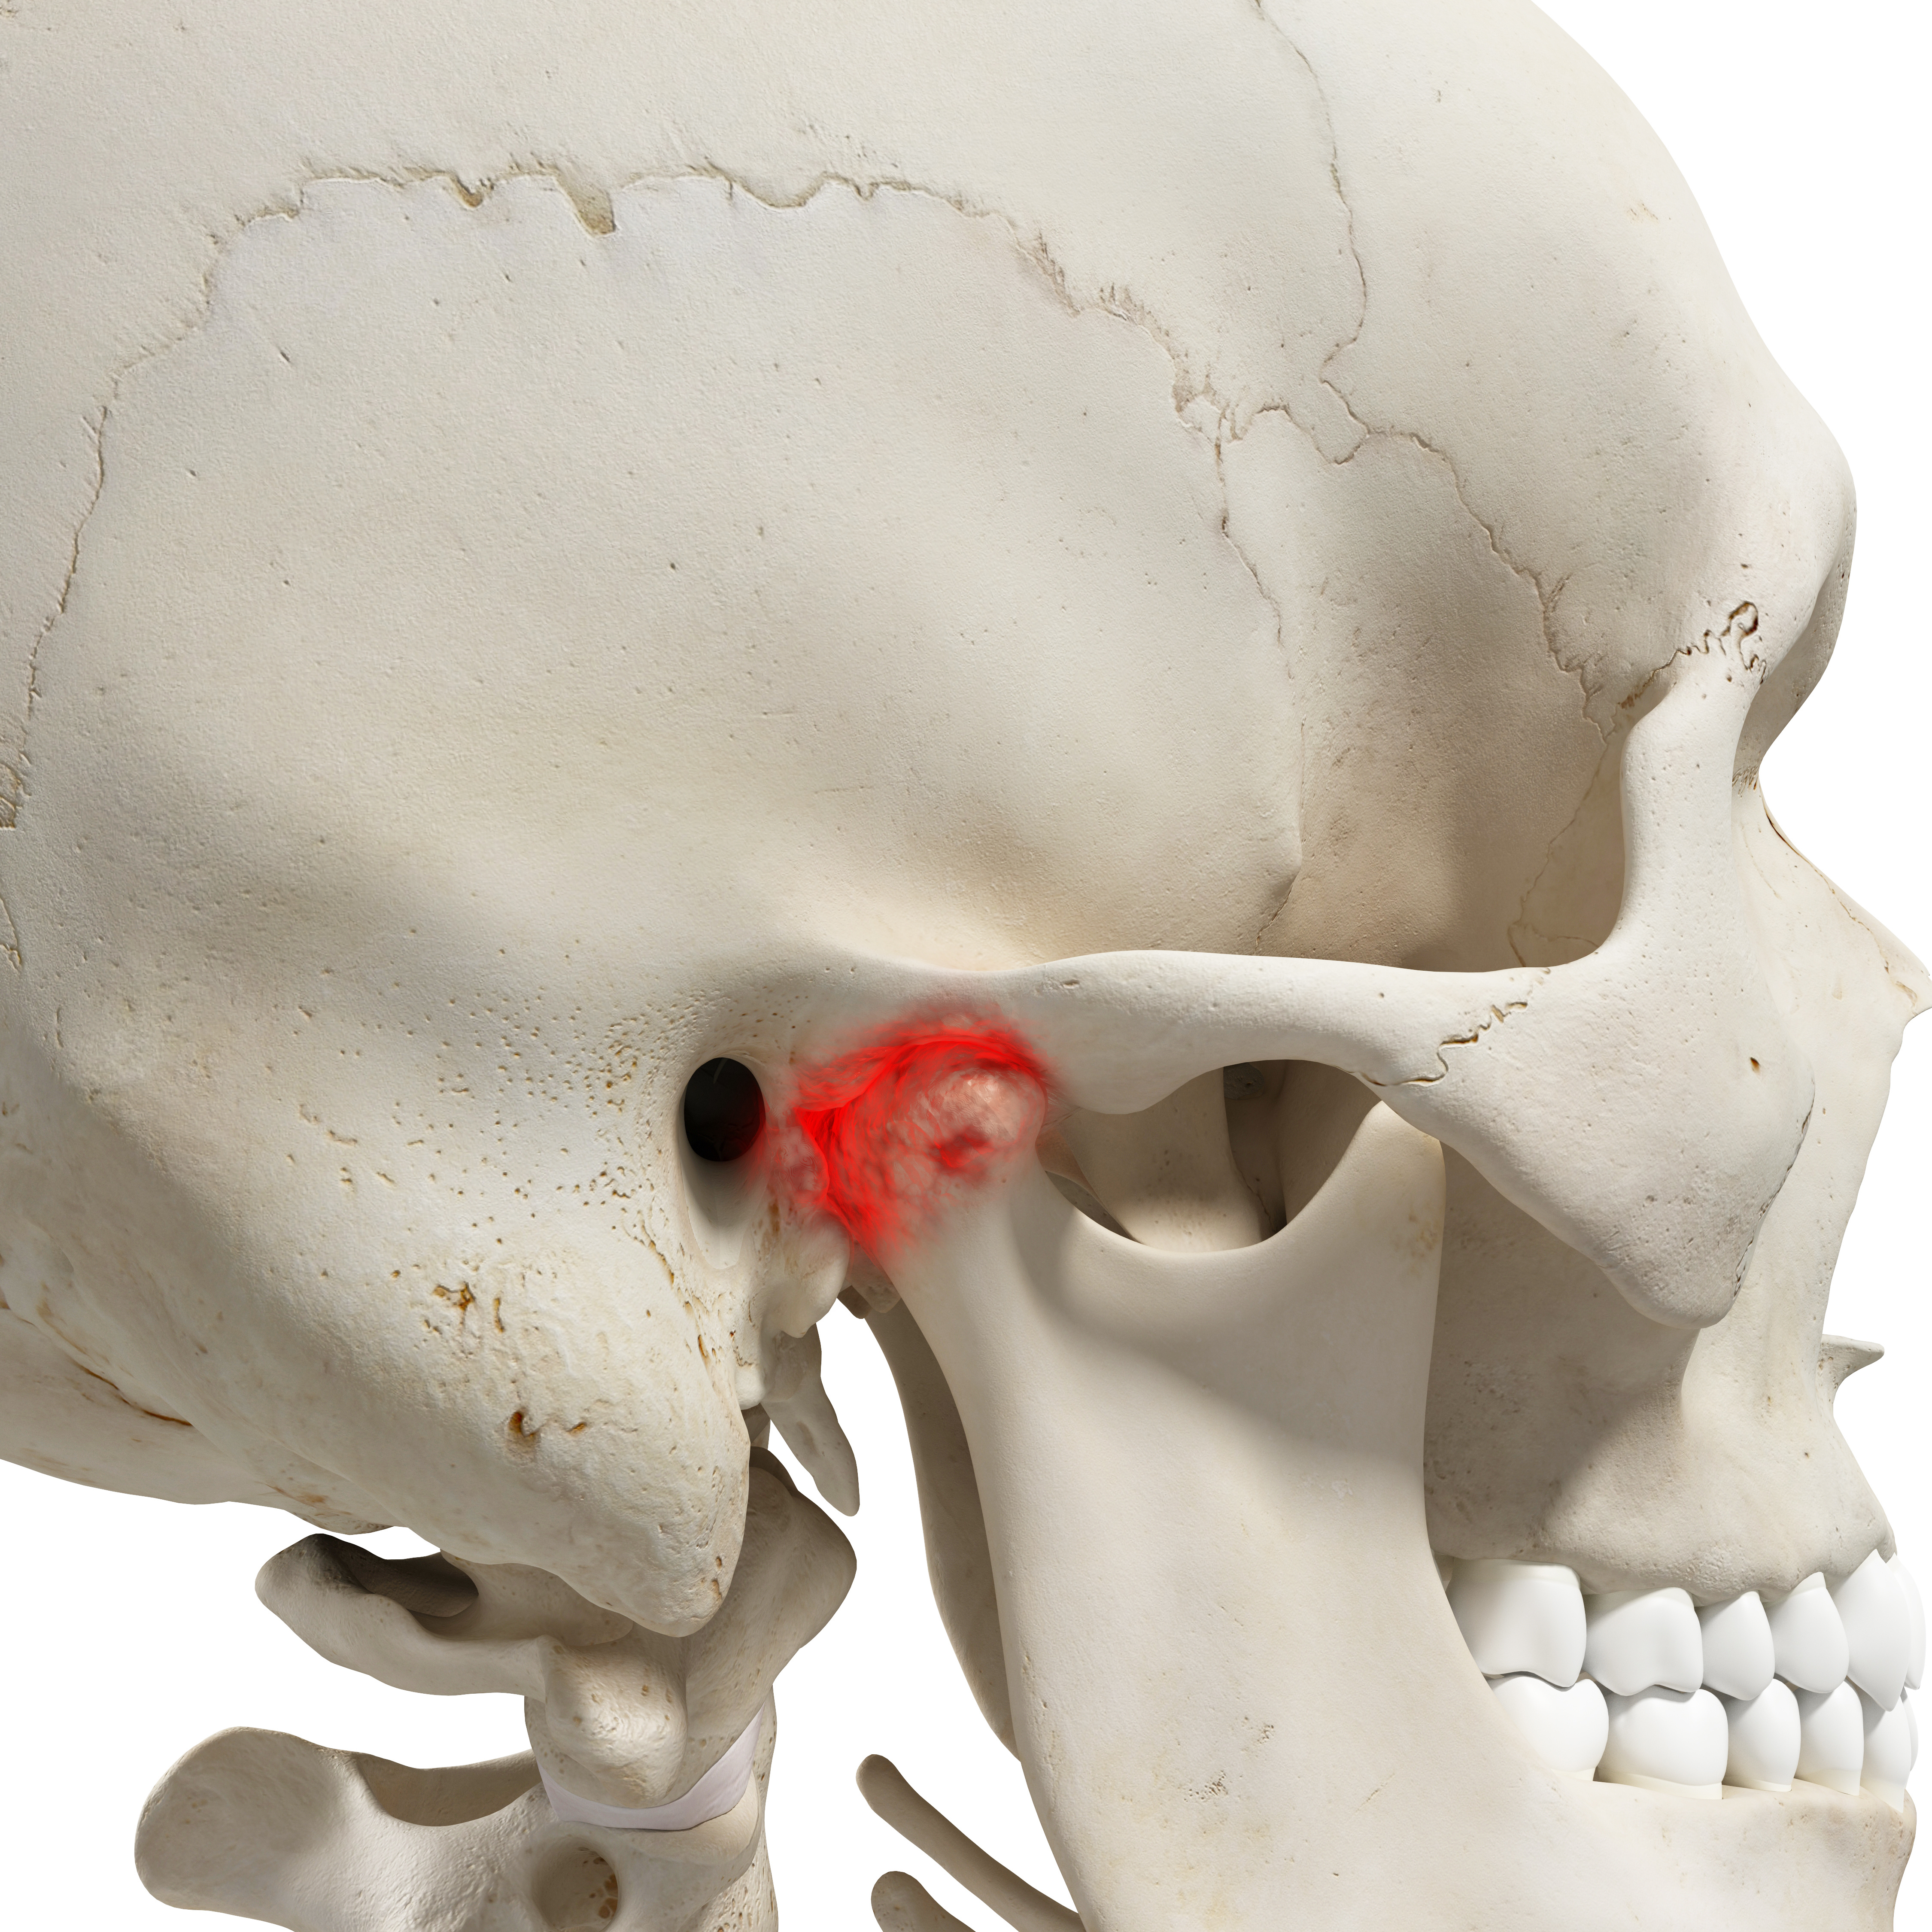 Treatment For Tmj Pain Elite Sports And Spine Chiropractic